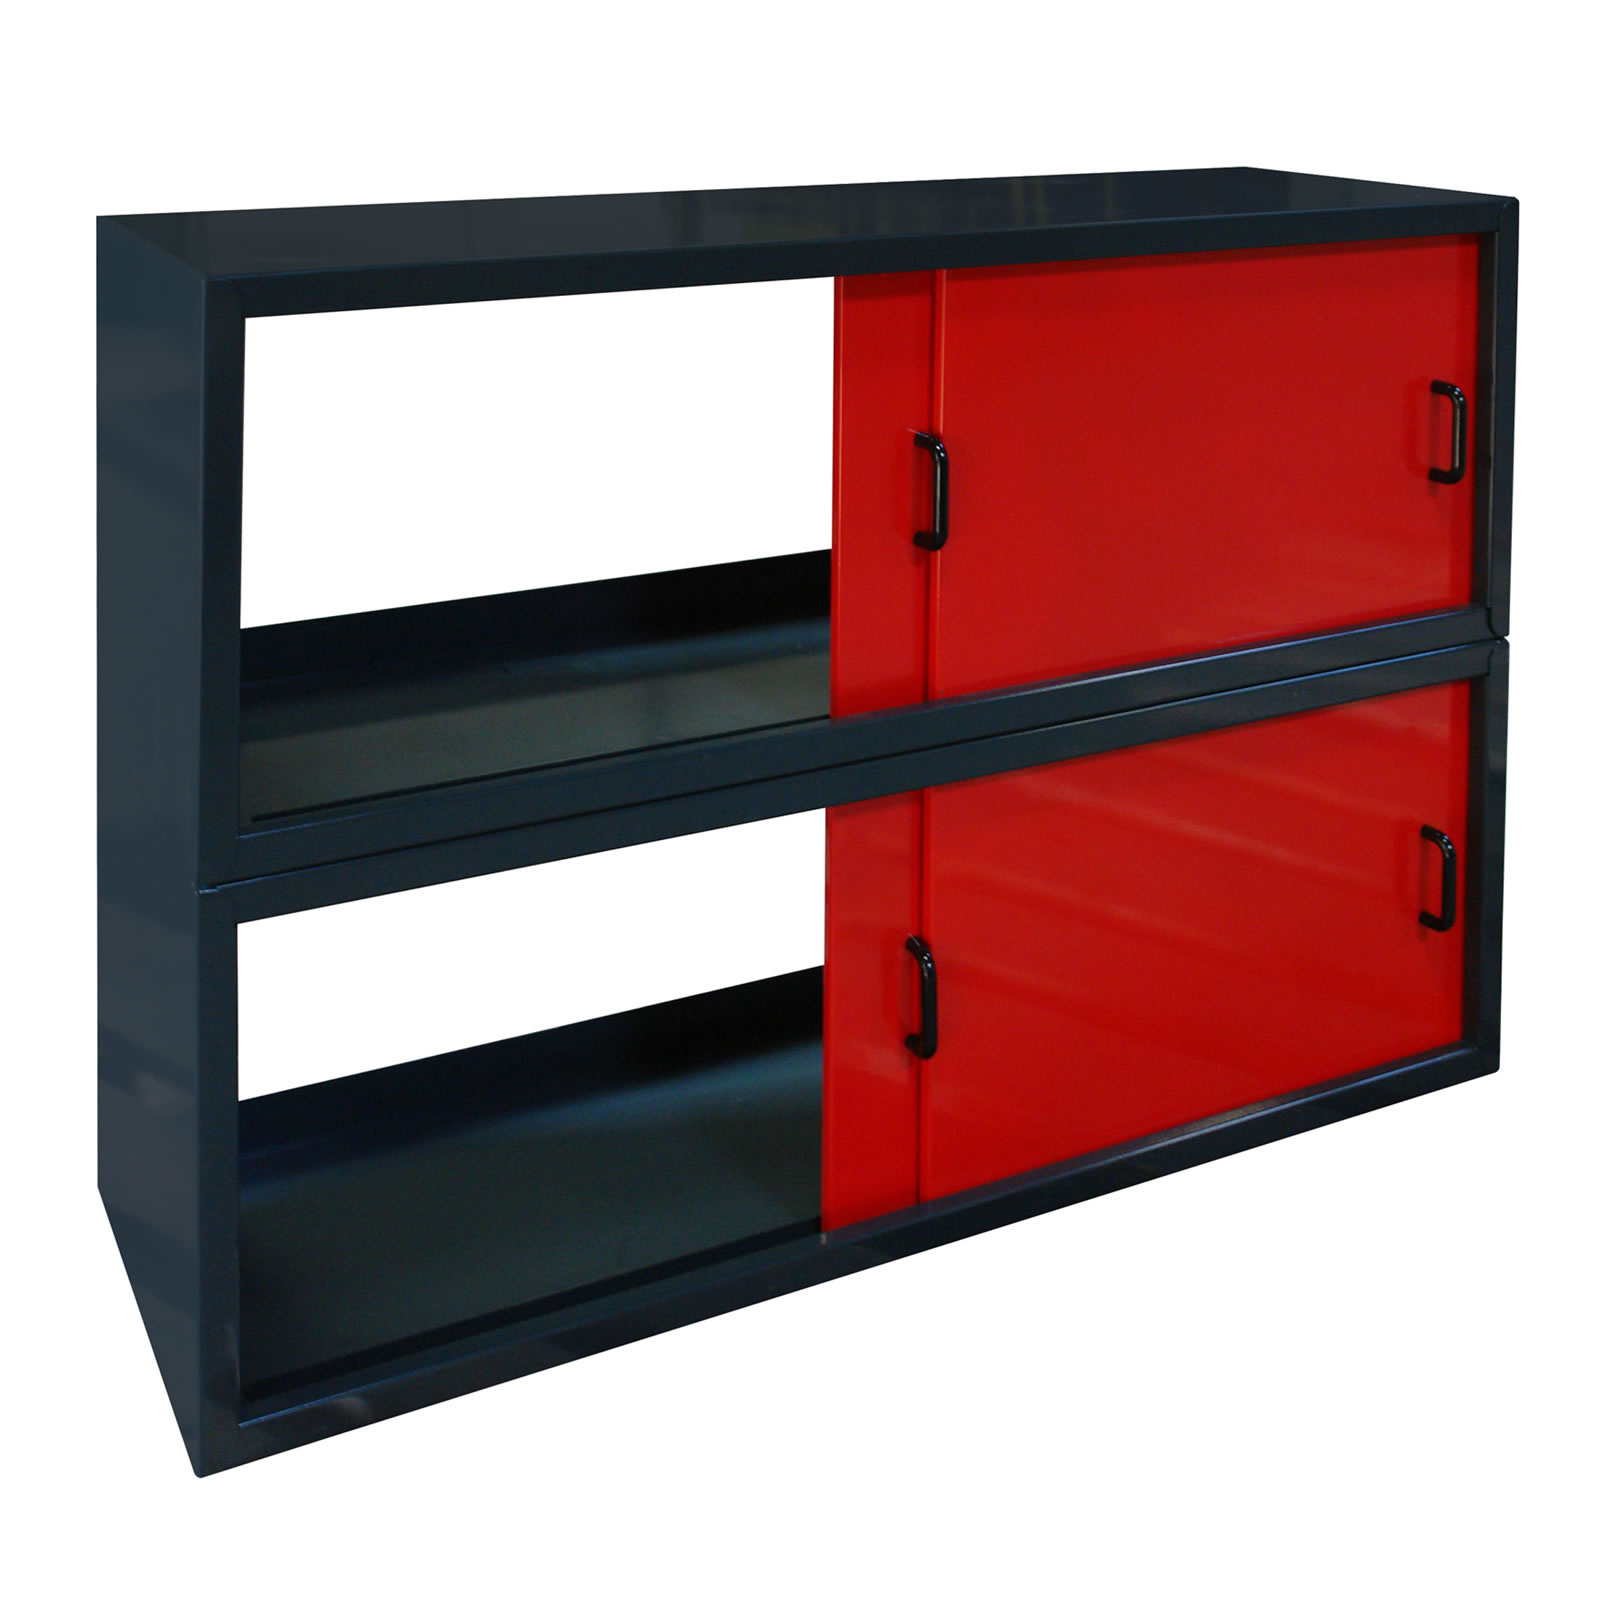 metall wandschrank h ngeschrank 2x2 schiebet ren f r garage werkstatt rot anthr ebay. Black Bedroom Furniture Sets. Home Design Ideas